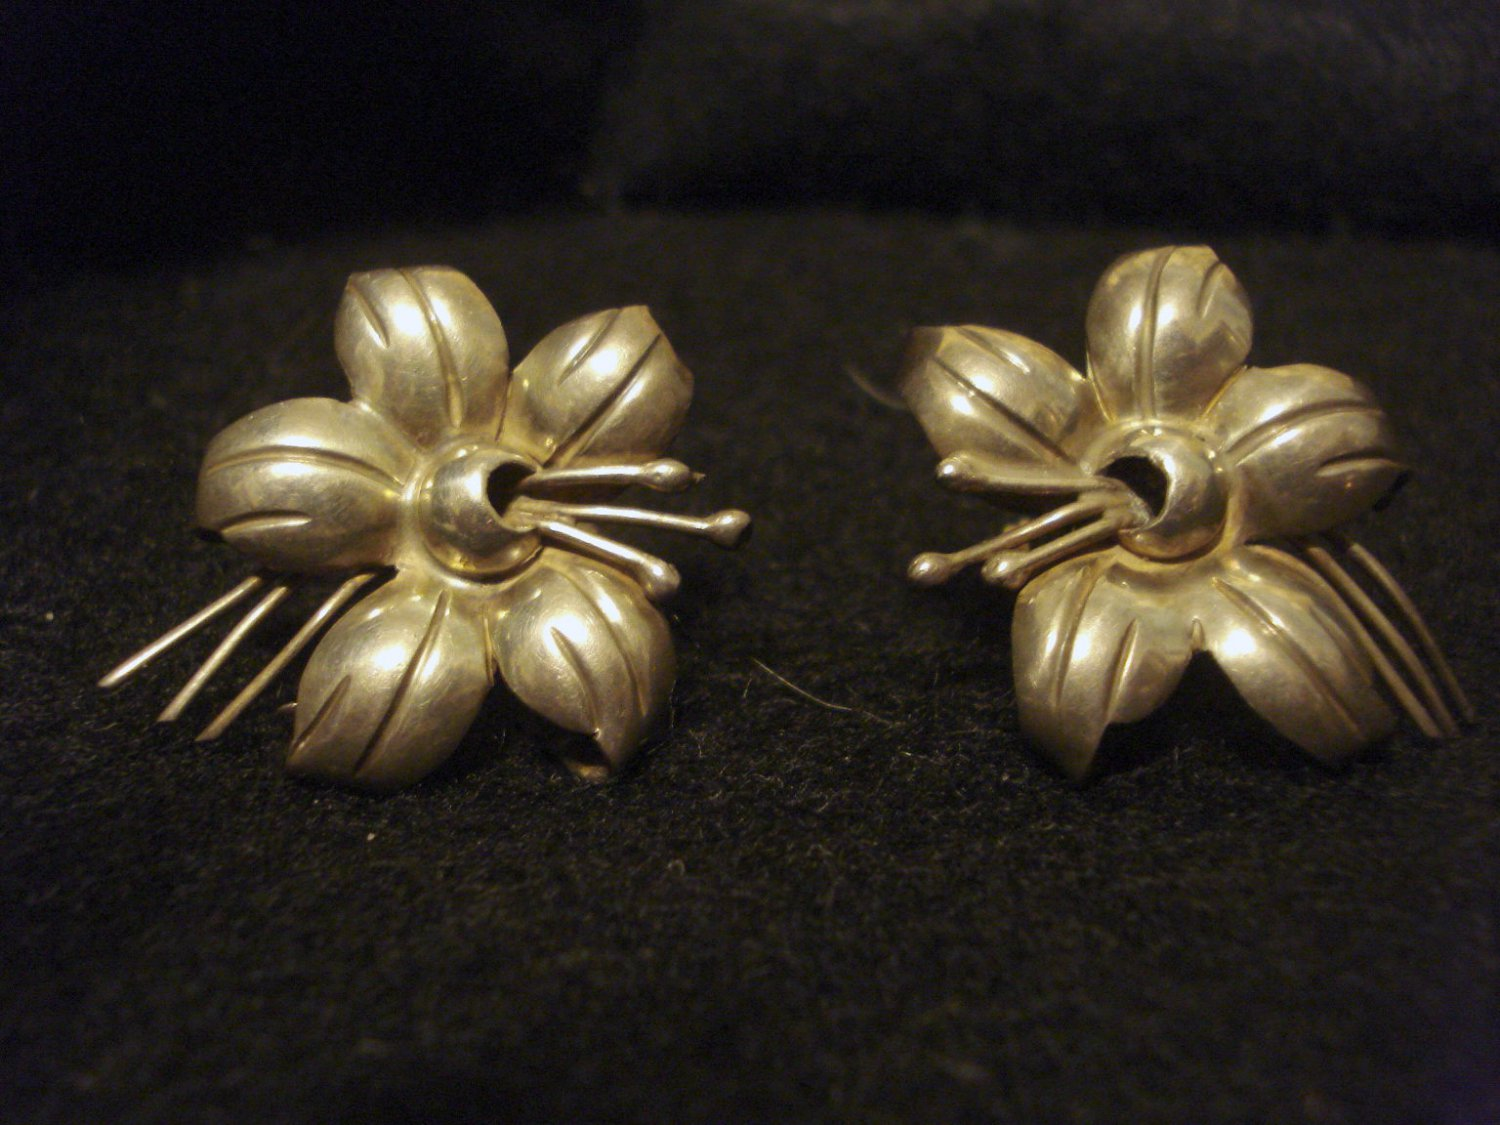 Old Sterling Silver Flower Vintage Earrings, 1-1/2 Inch, Marked, Screw-on